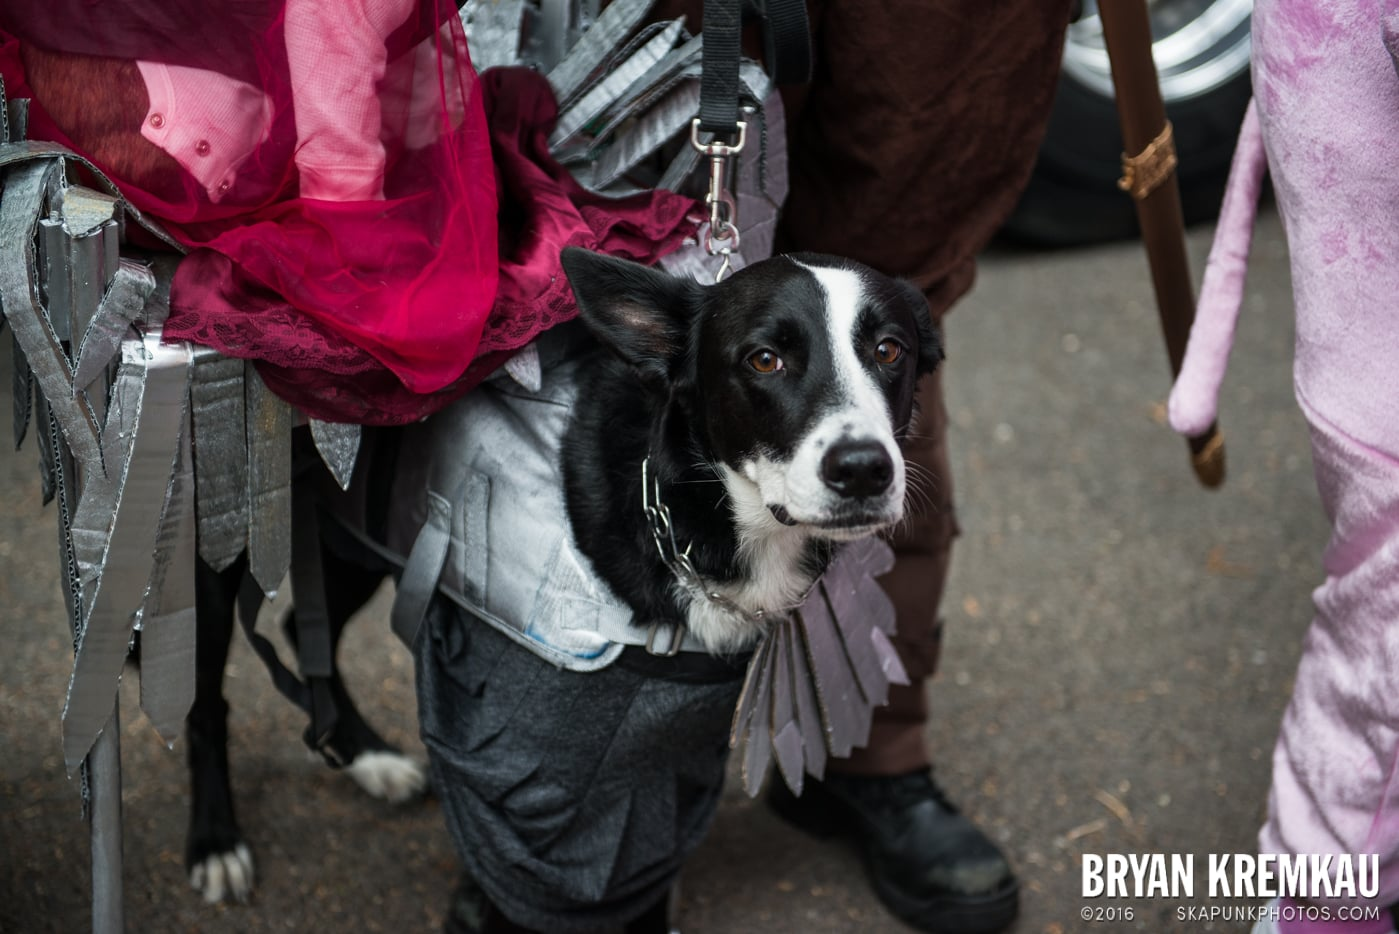 Tompkins Square Halloween Dog Parade 2015 @ Tompkins Square Park, NYC – 10.24.15 (46)